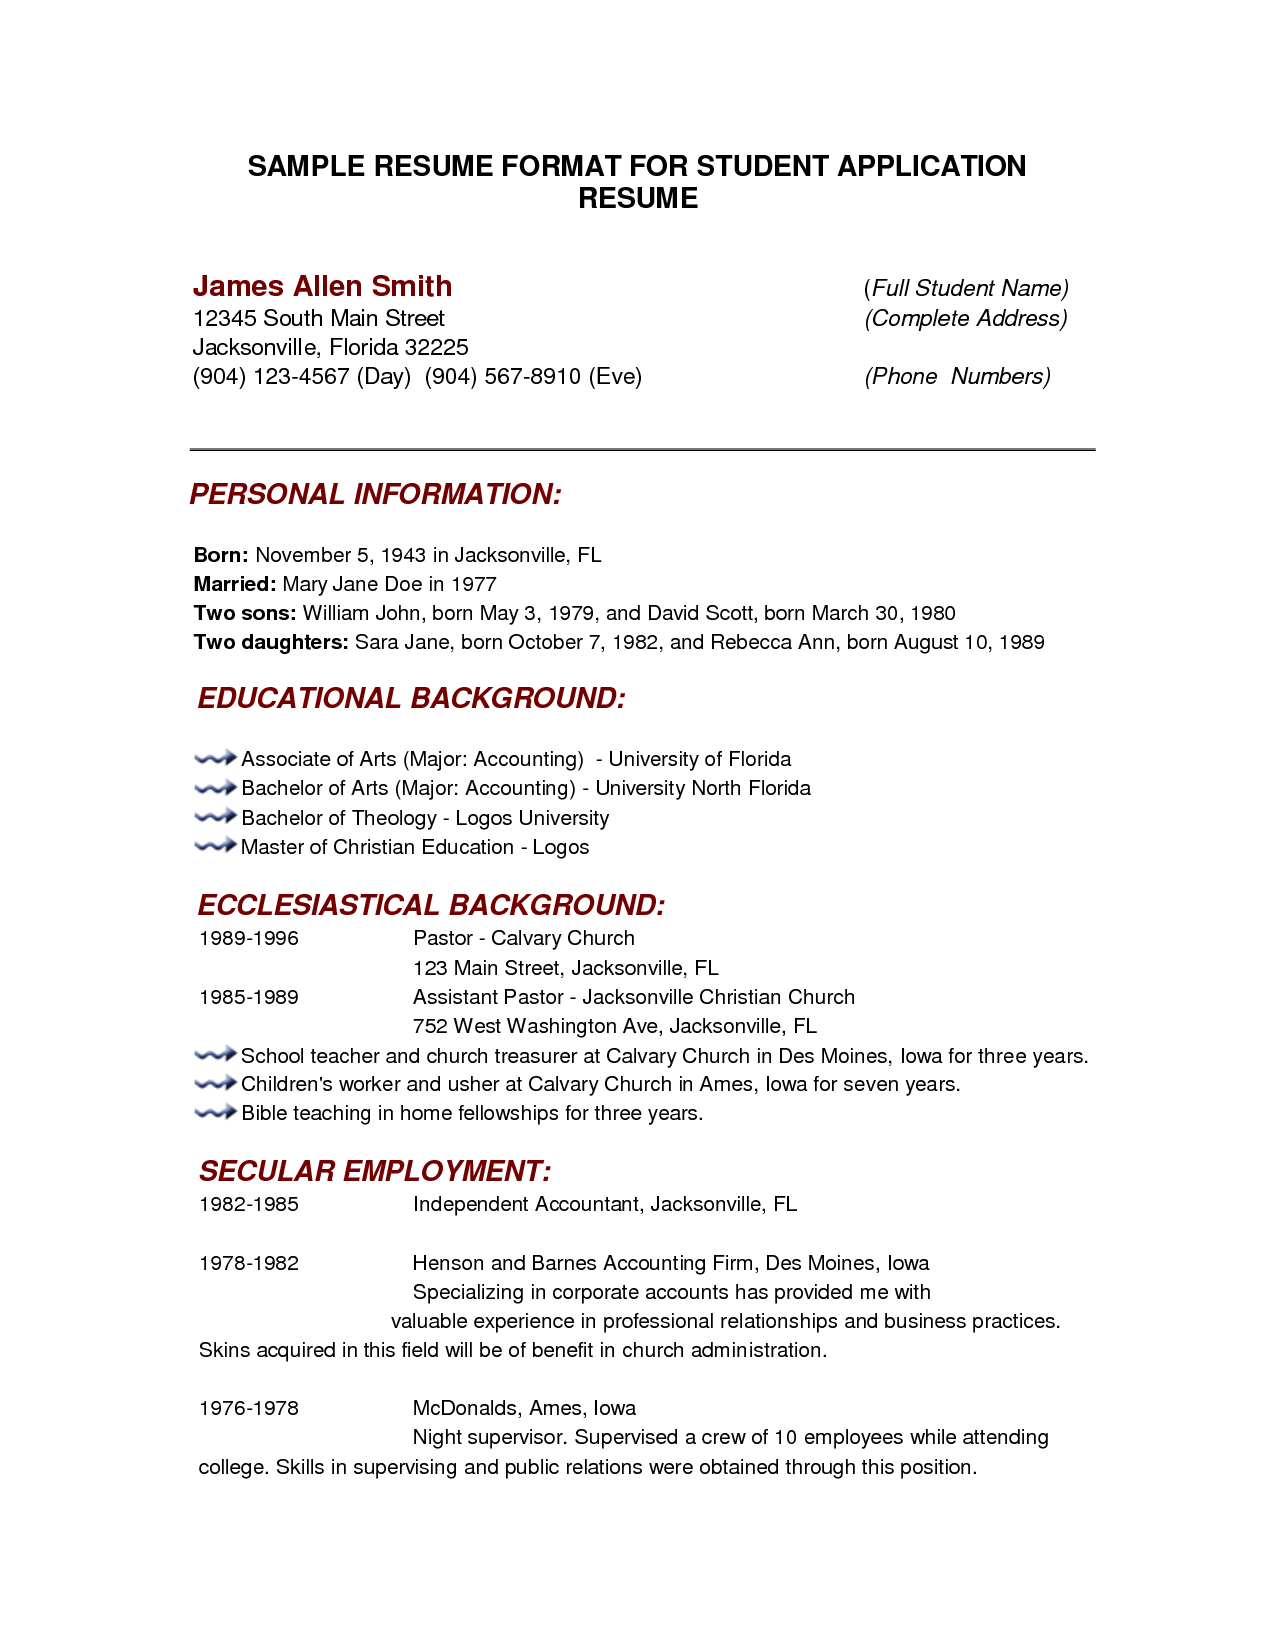 Resume Examples For College Students High School Senior Resume For College Application  Google Search